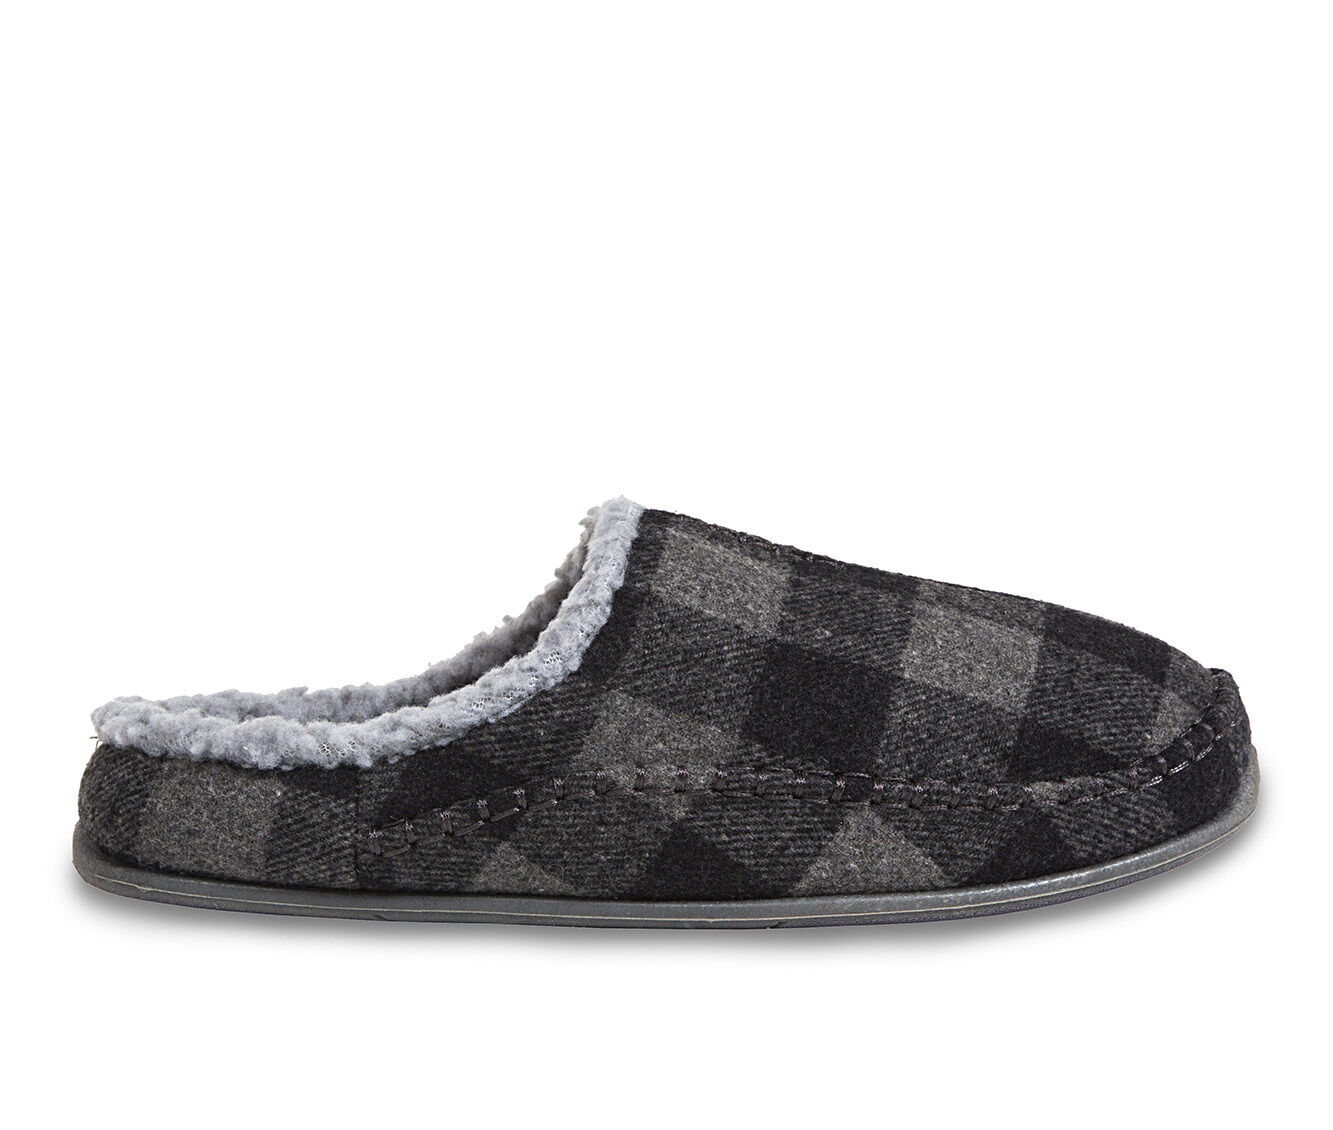 Deer Stags Nordic Slippers Gry/Blk Plaid